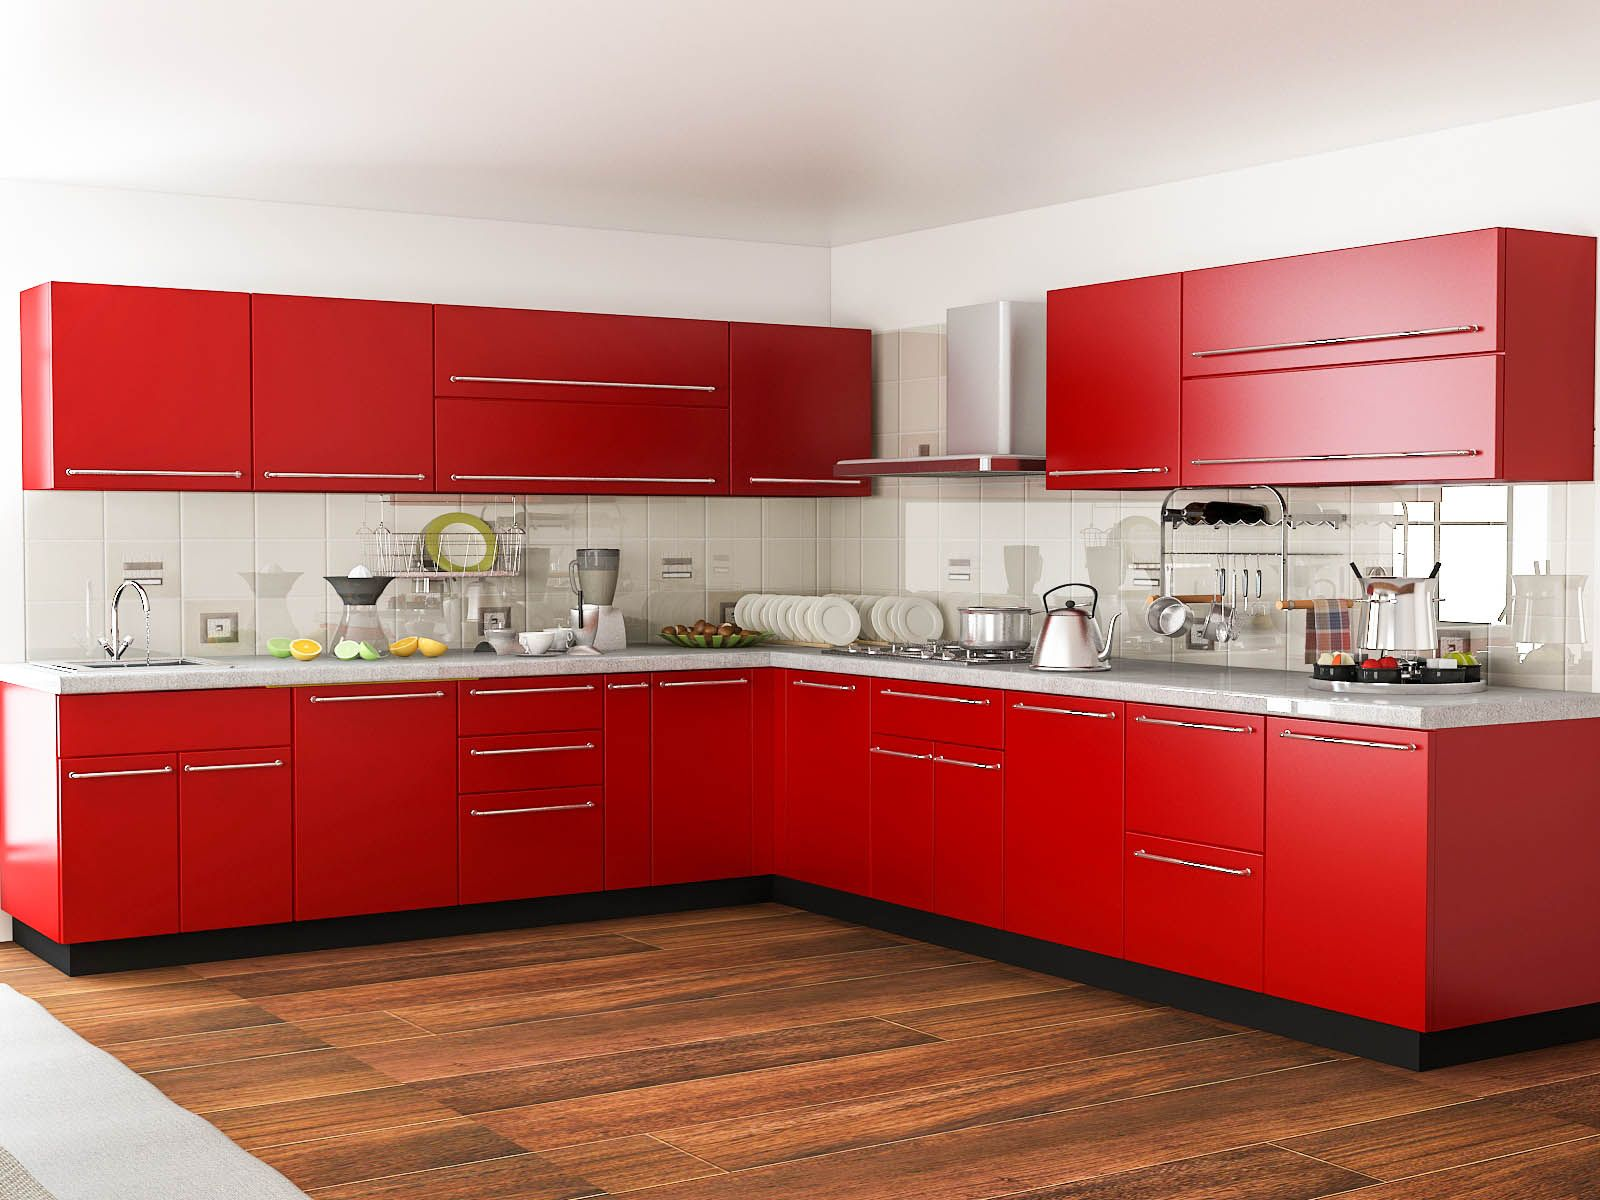 Customfurnish L Shaped Red Kitchen Modular Kitchens Pinterest Design And